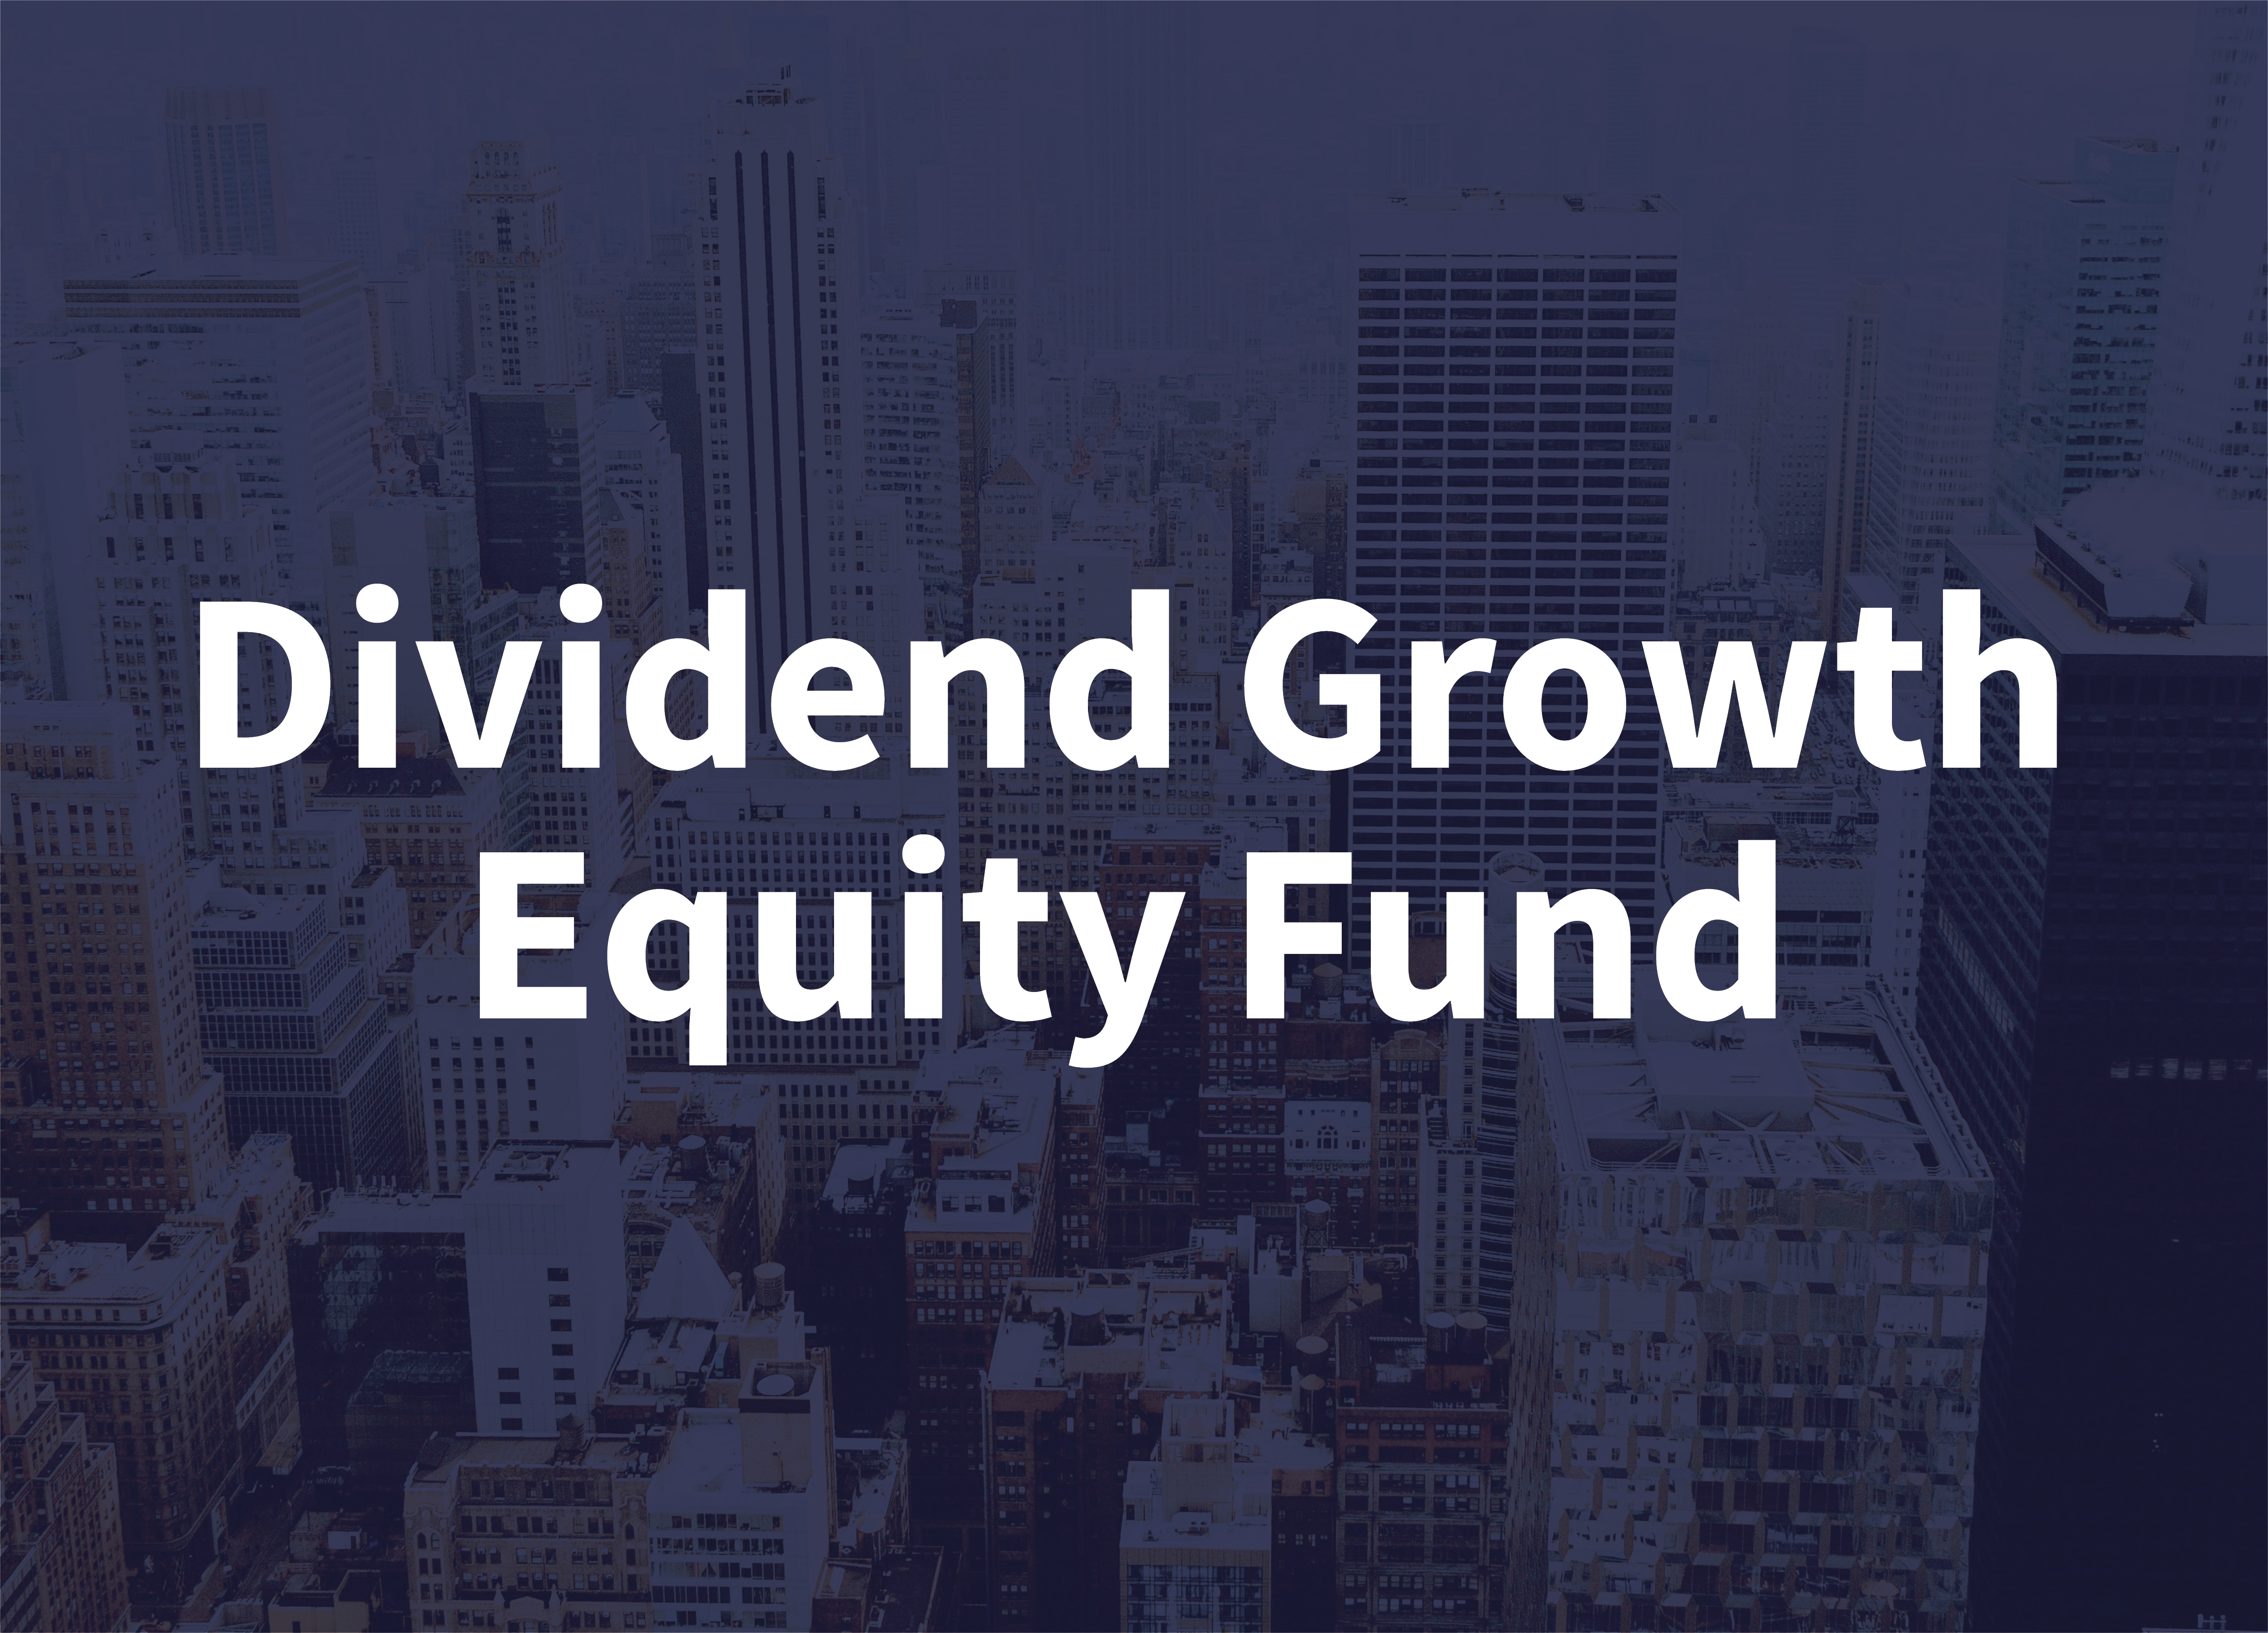 Dividend Growth Equity Fund